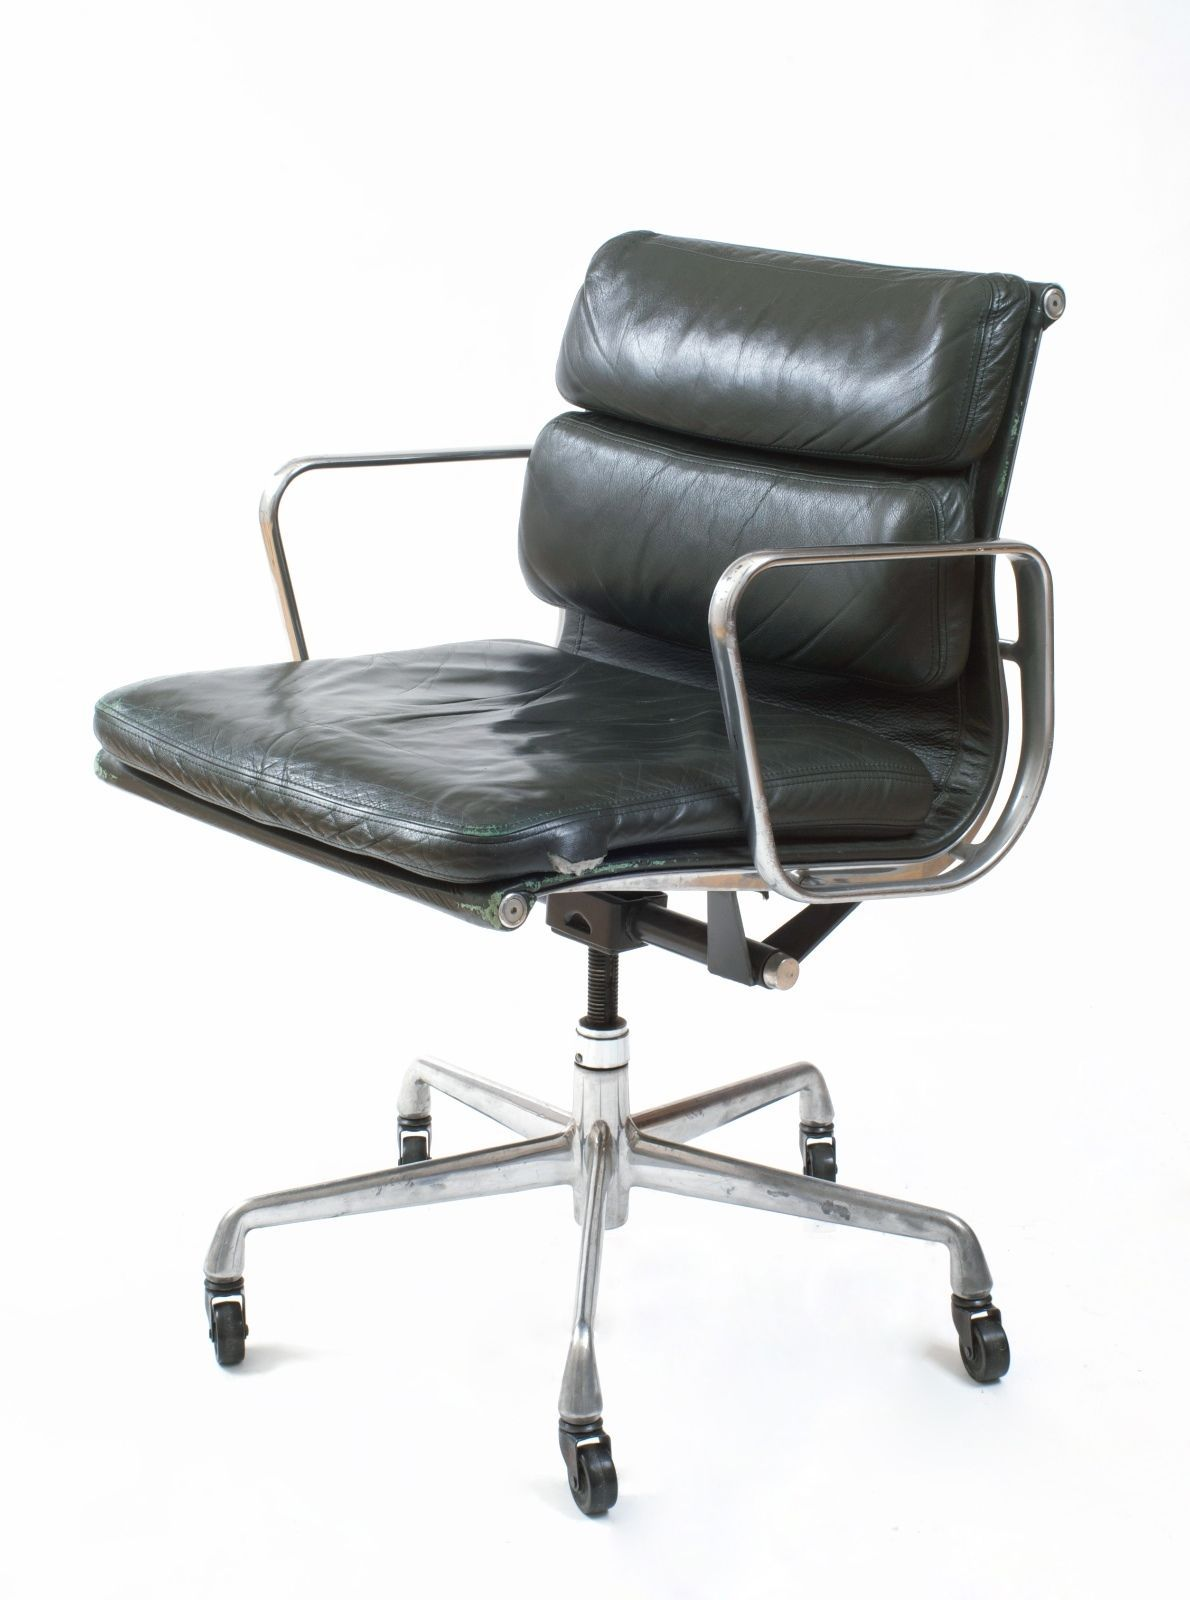 Vintage eames chair - Vintage Eames Soft Pad Management Chair For Herman Miller Dark Green Leather